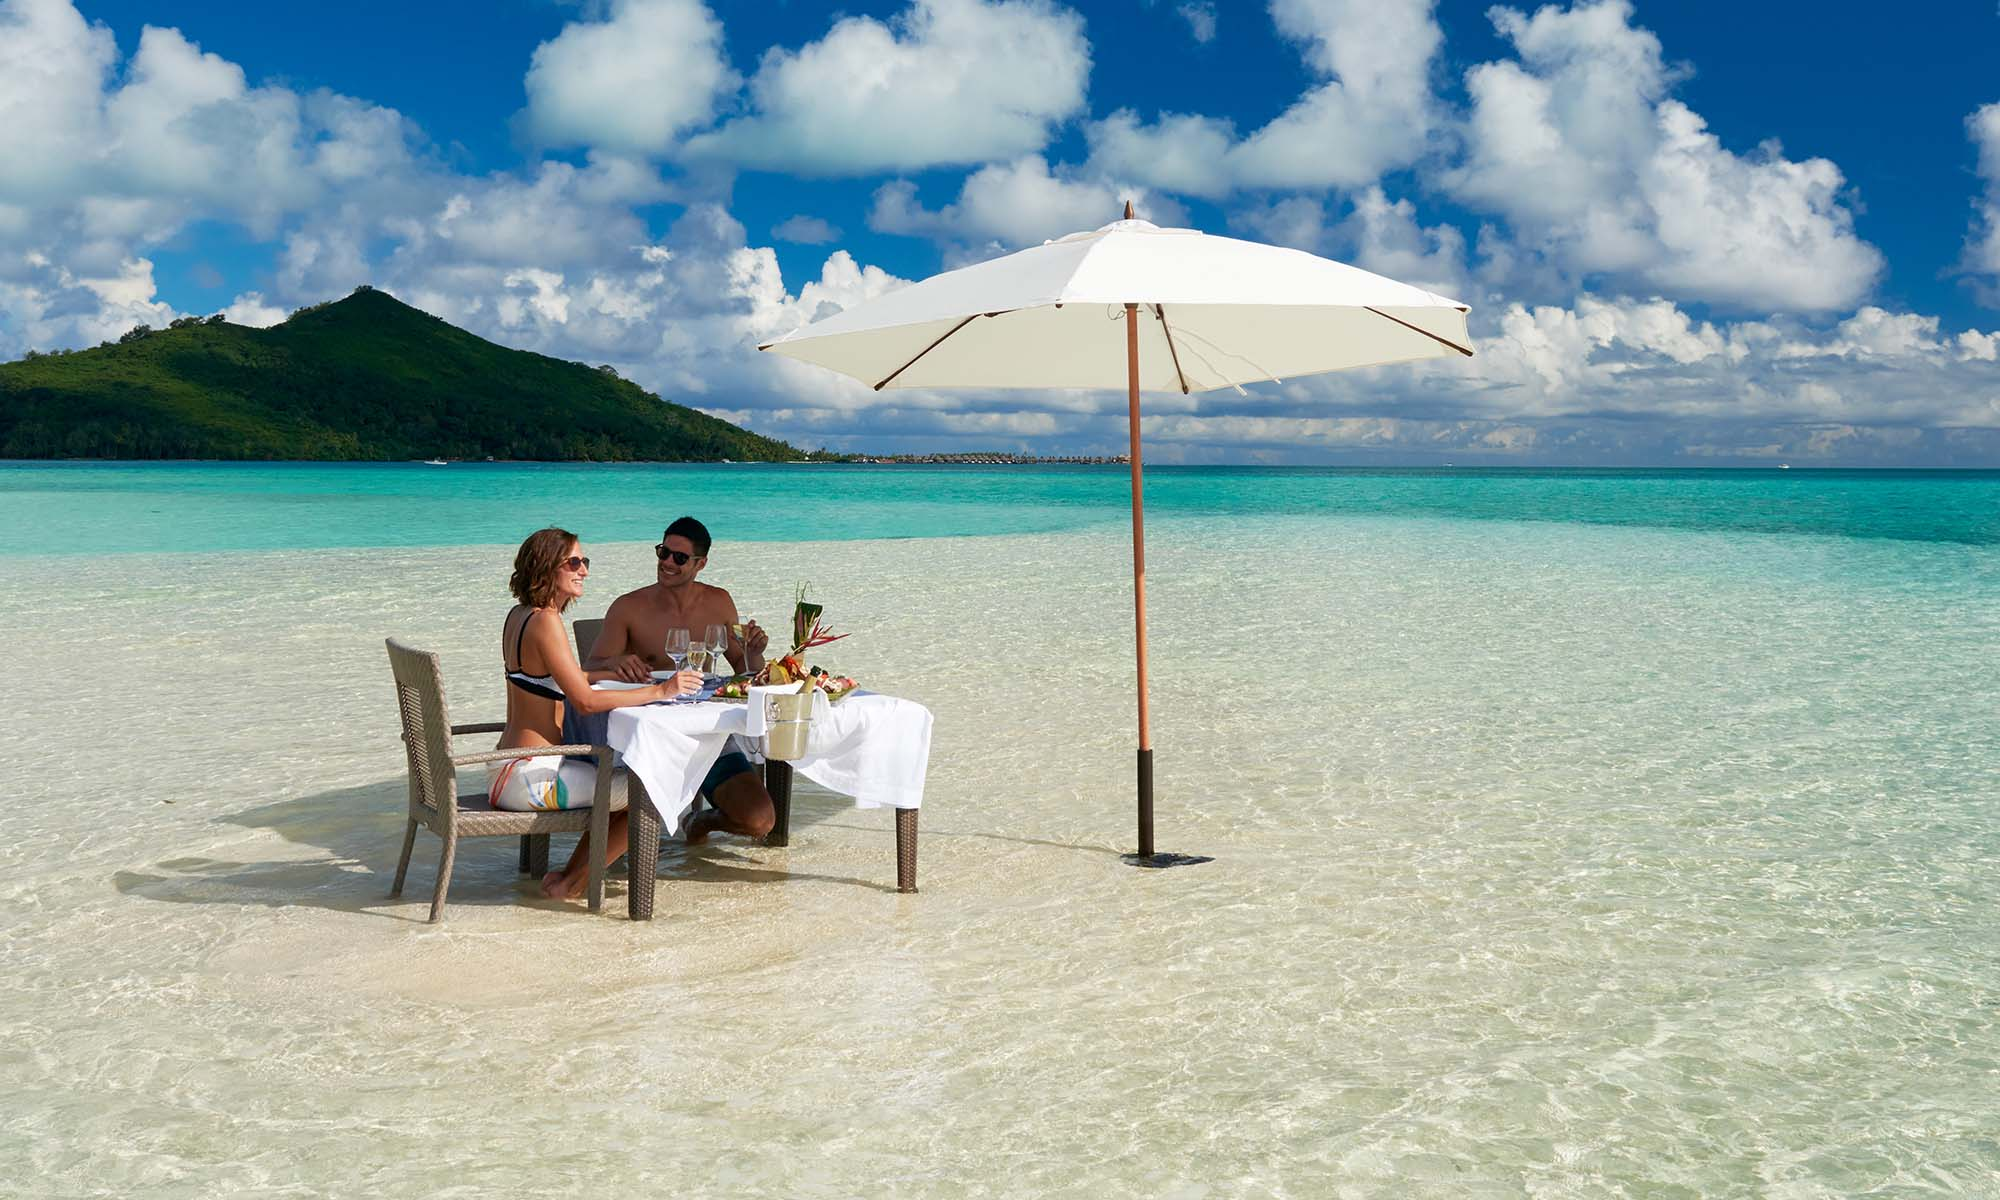 Enjoy a private meal with your feet in the water